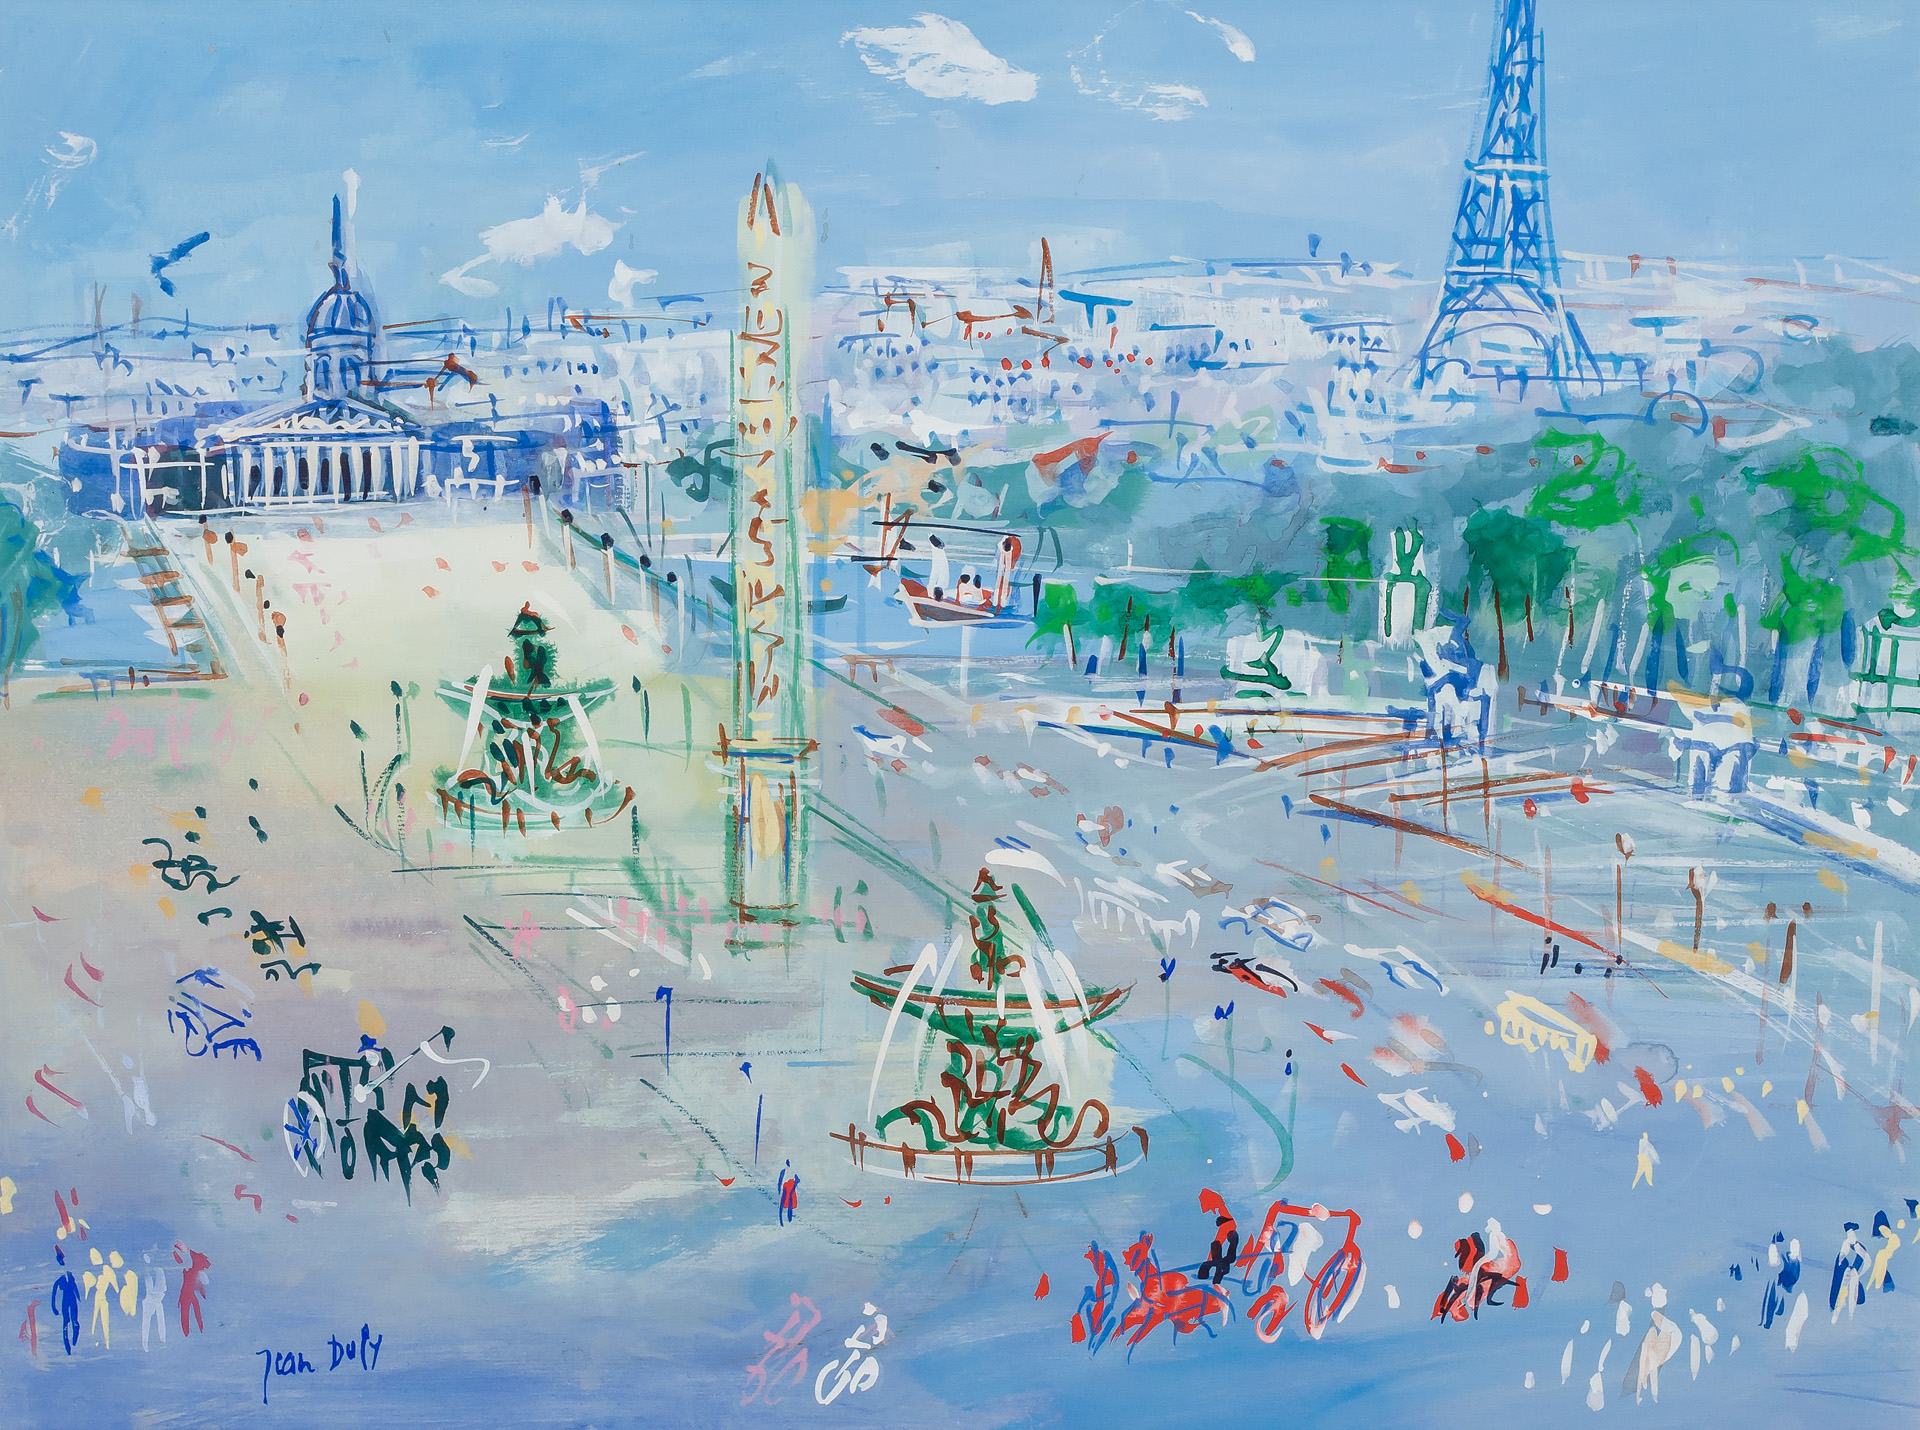 JEAN DUFY, French (1888-1964), Place De La Concorde, watercolor and gouache on paper, signed, 18 7/8 x 24 7/8 inches, Estimate:$40,000-60,000